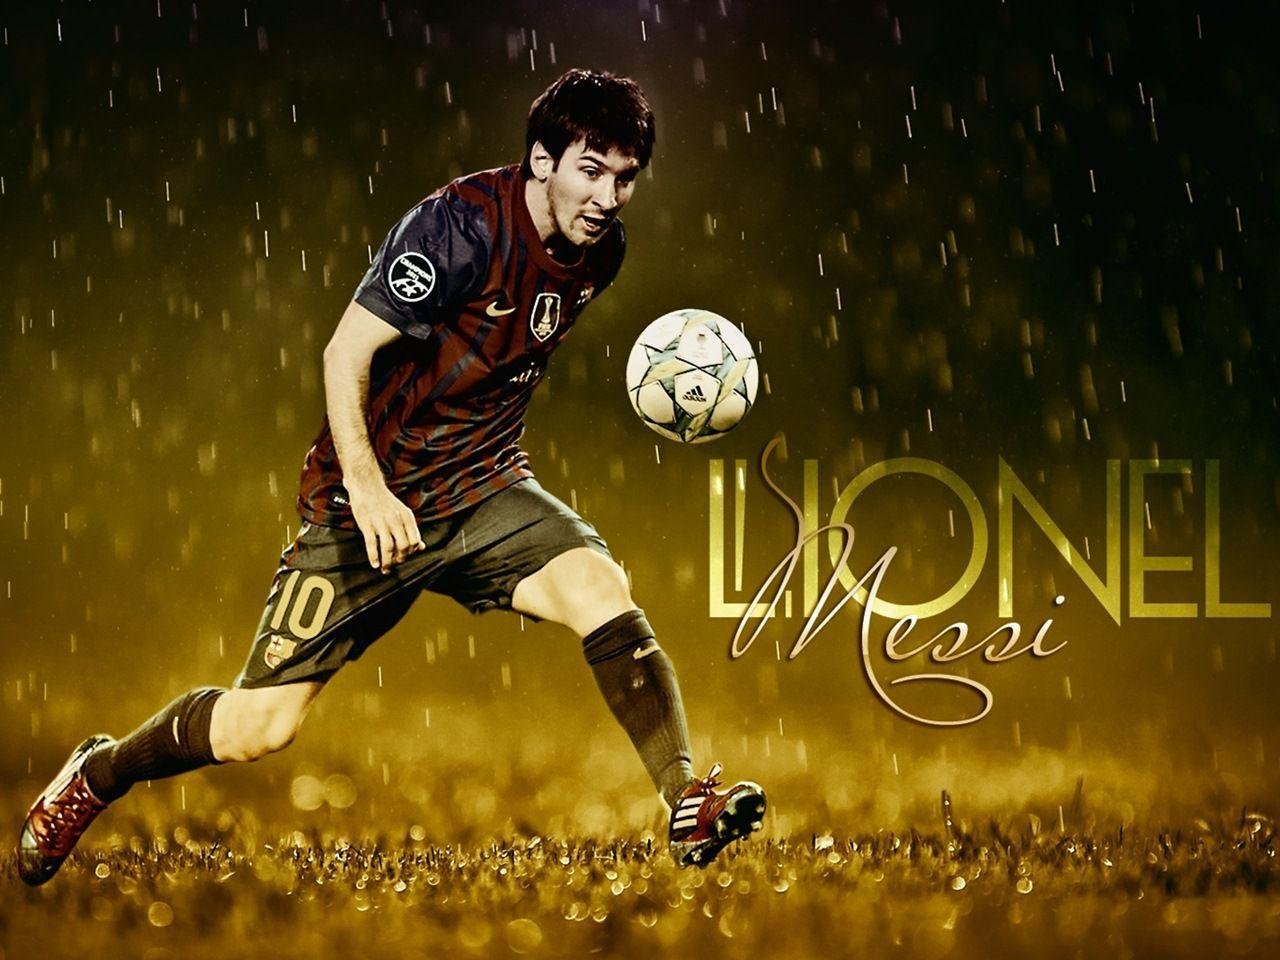 Lionel Messi HD Soccer Wallpaper 4197 Full HD Wallpaper Desktop ...